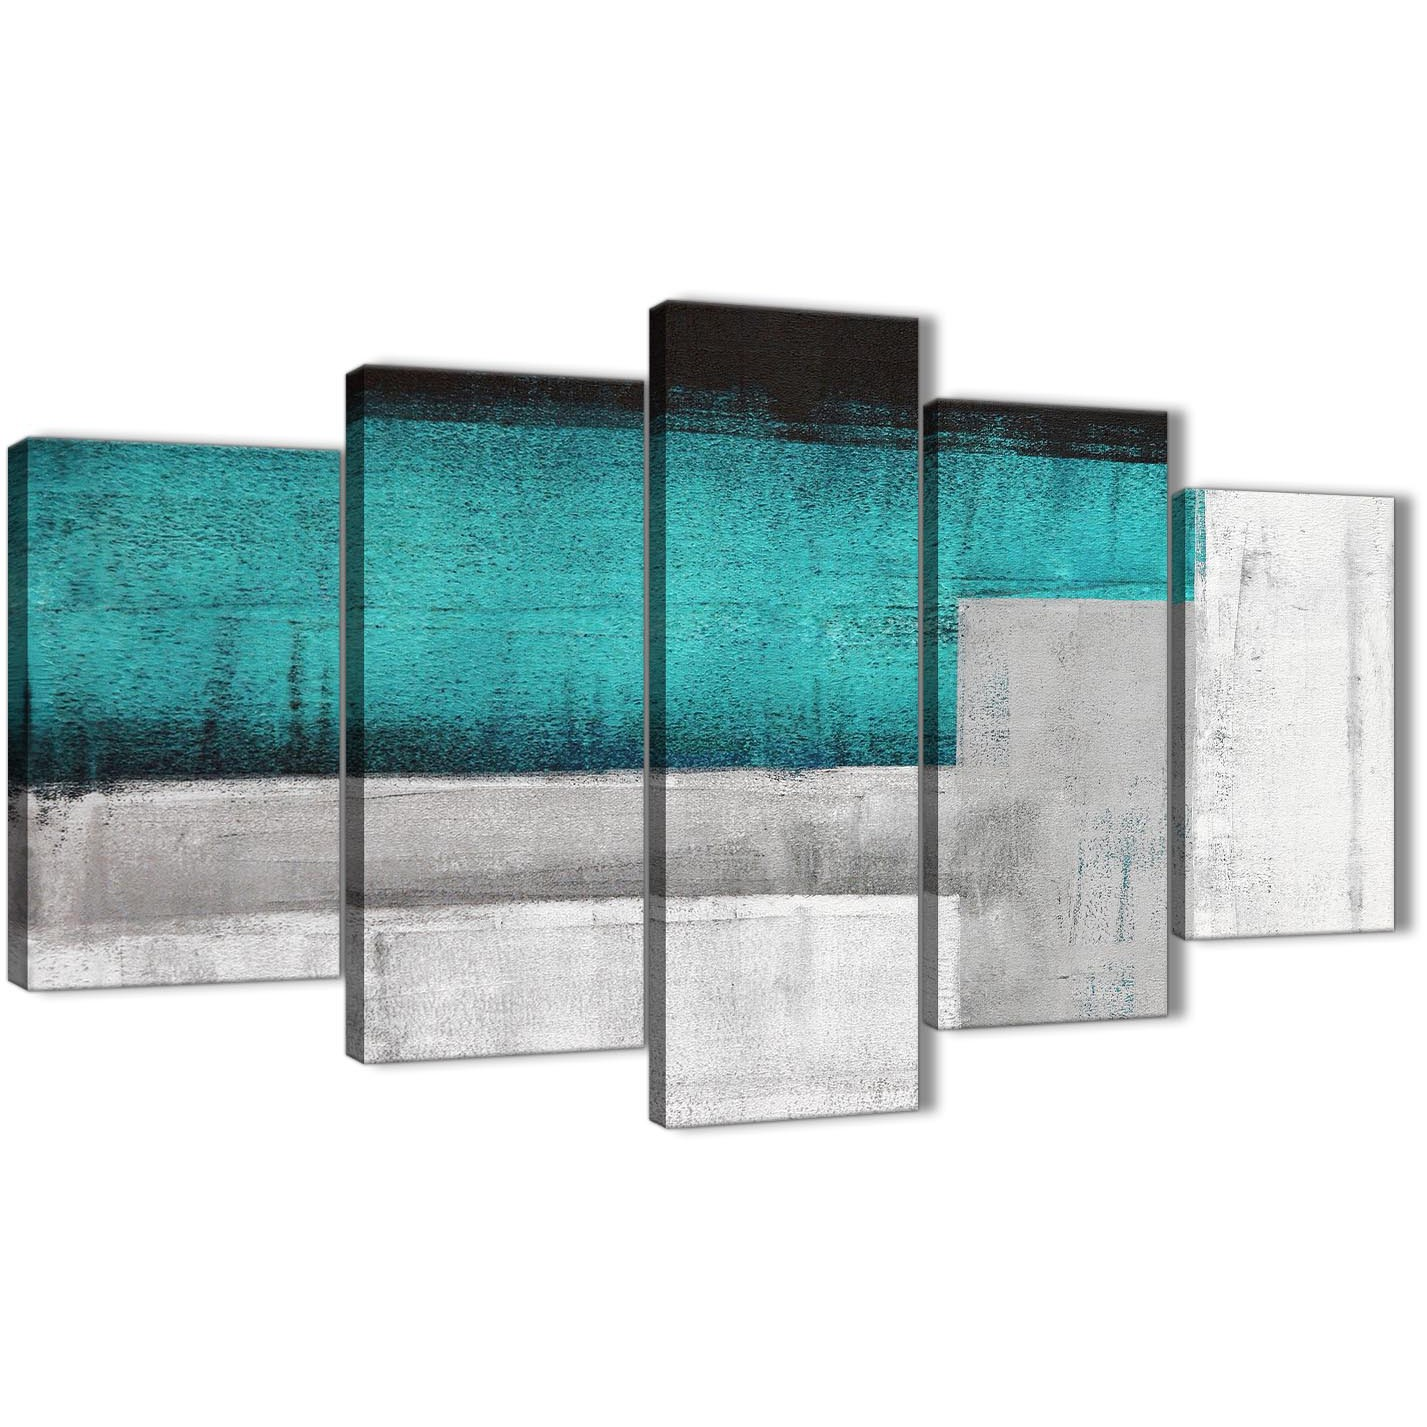 5 panel teal turquoise grey painting abstract office canvas wall art